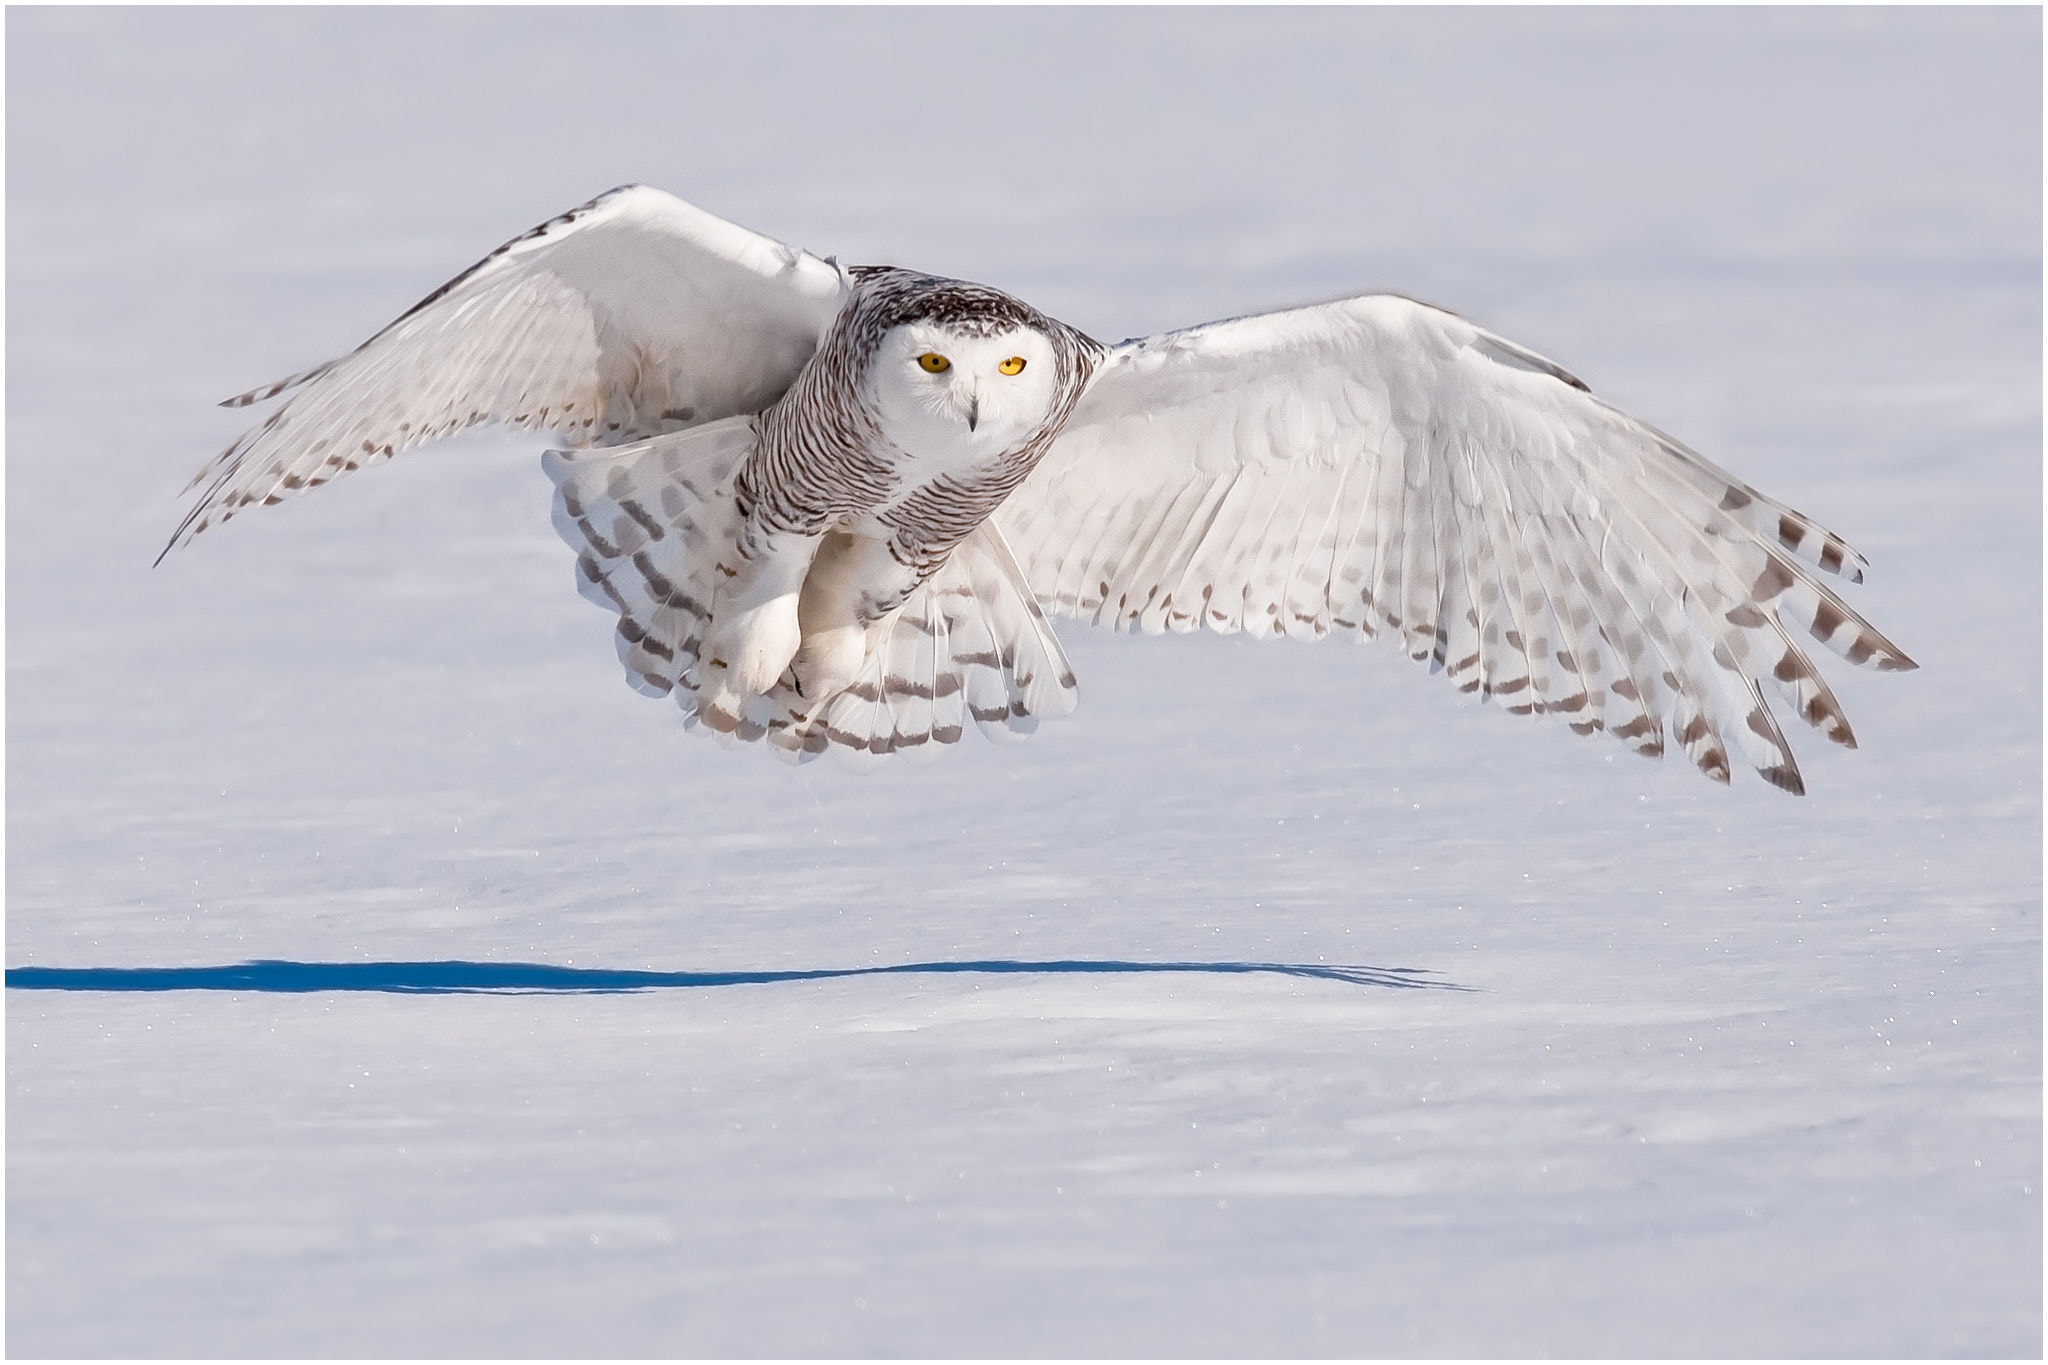 Photograph Snowy Owl by Pierre Giard on 500px